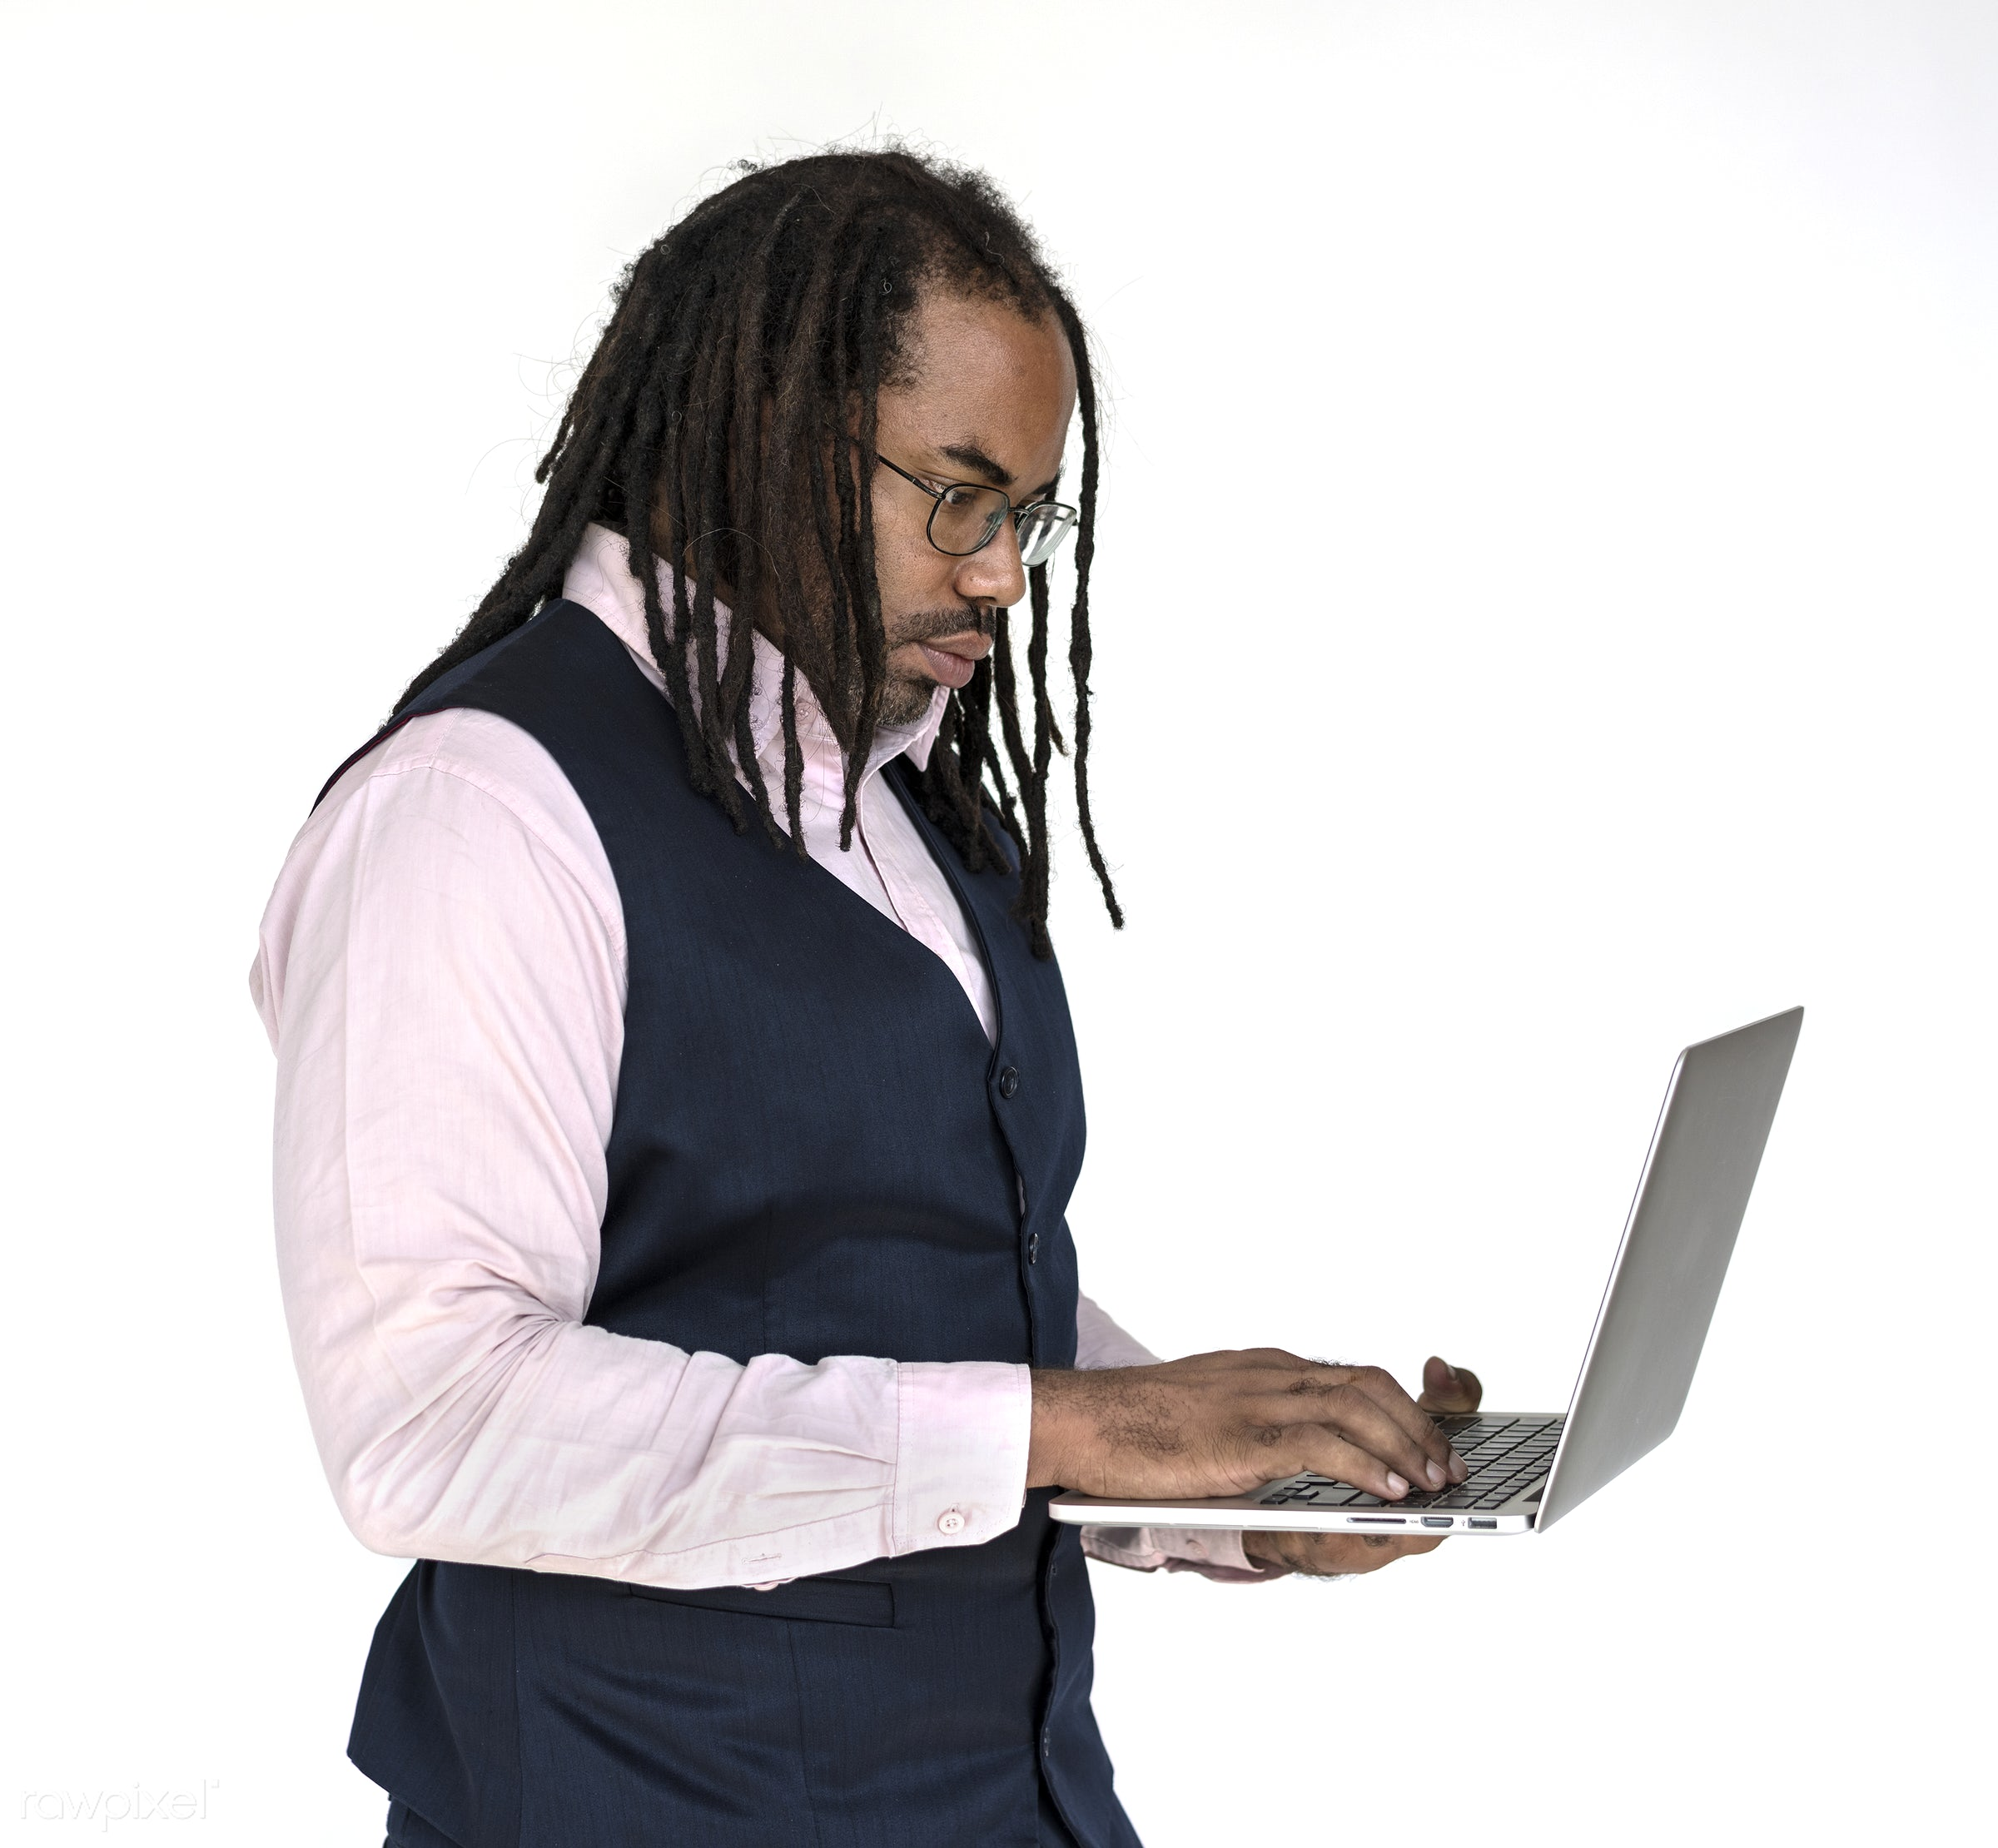 expression, computer, studio, model, person, isolated on white, people, race, digital, style, casual, lifestyle, laptop, men...